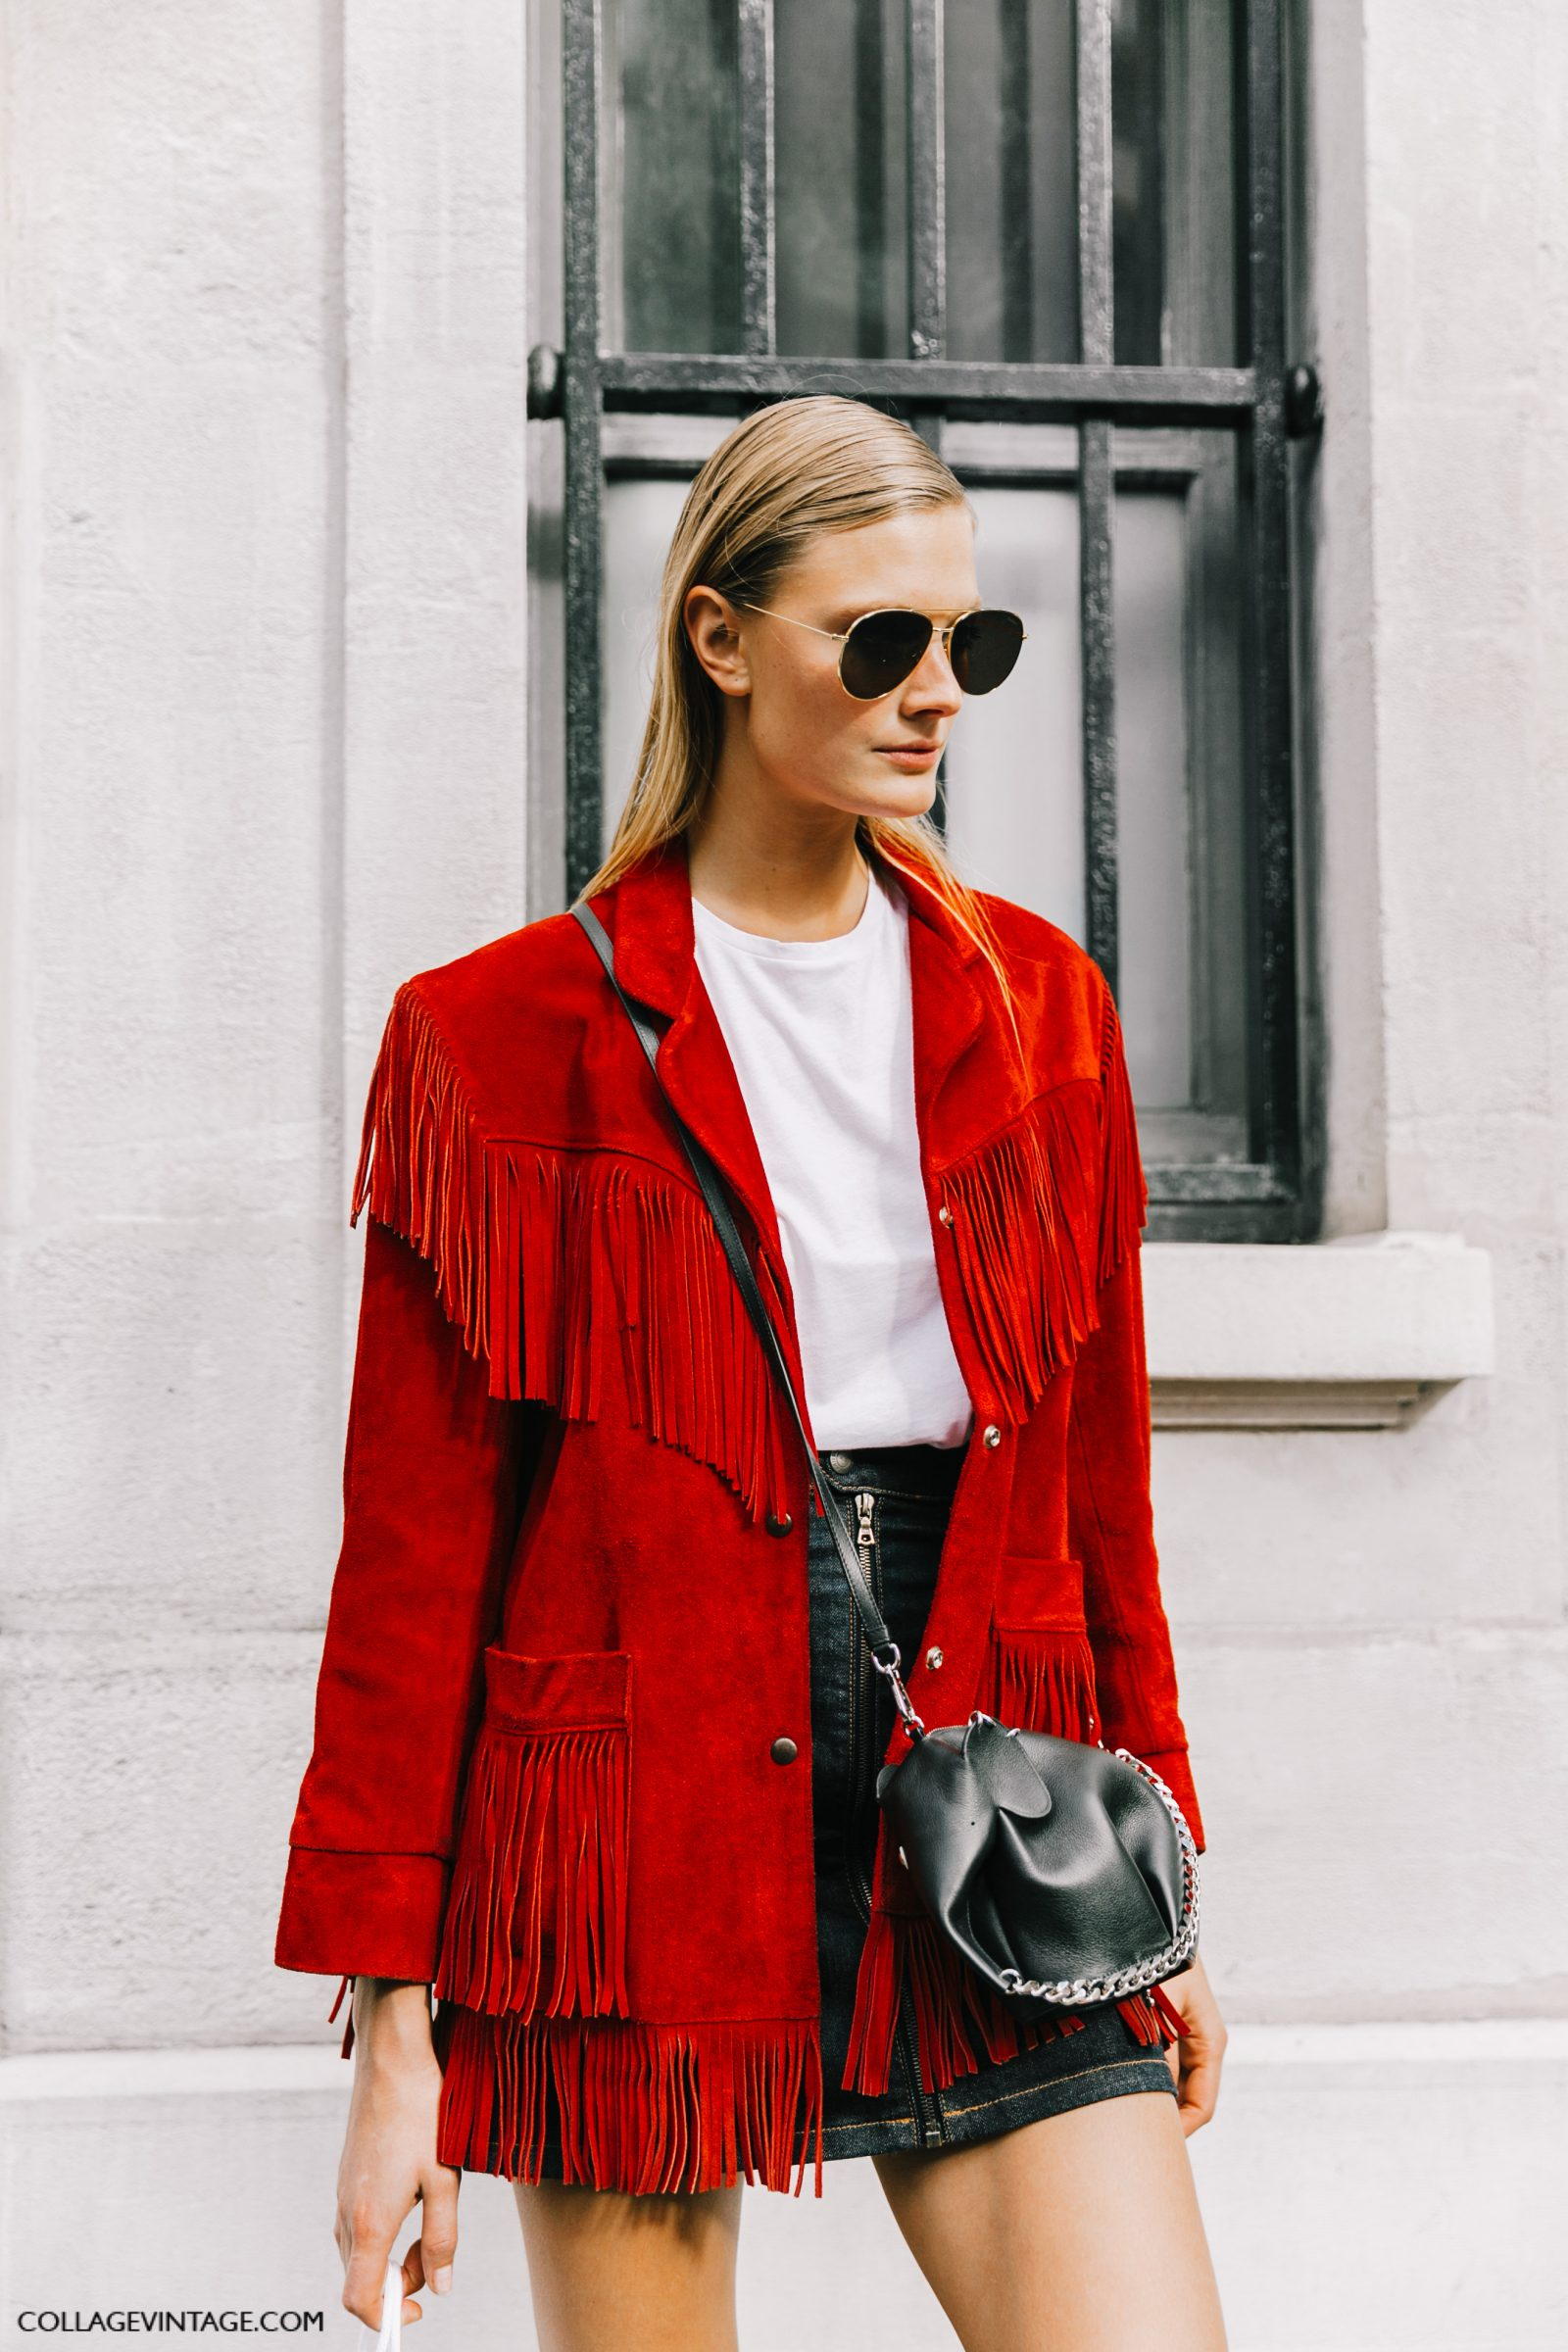 pfw-paris_fashion_week_ss17-street_style-outfits-collage_vintage-chloe-carven-balmain-barbara_bui-189